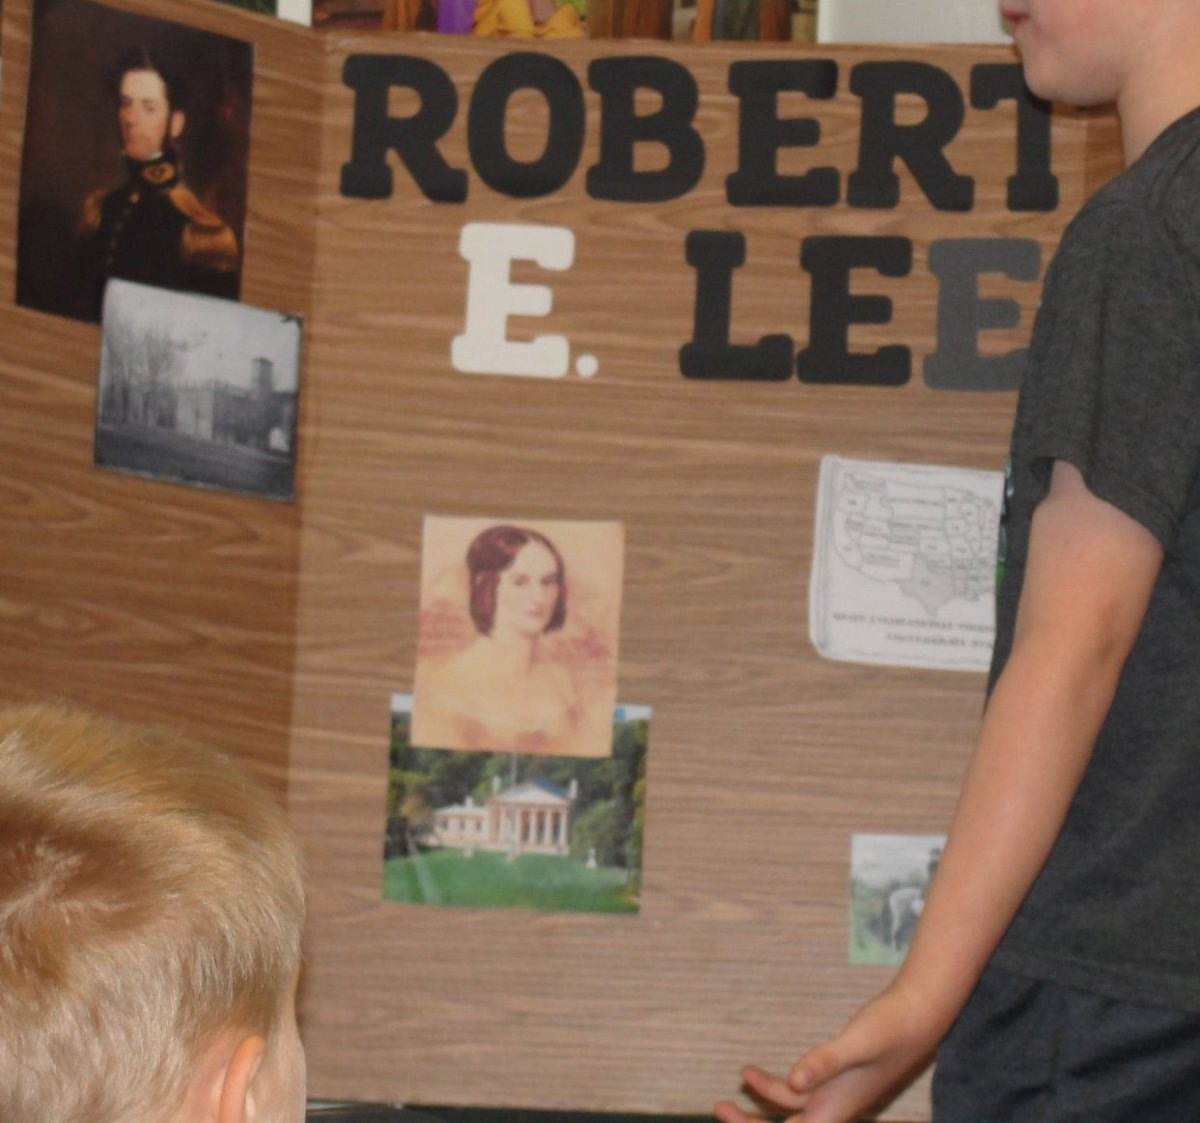 Student biography presentation on Robert E. Lee